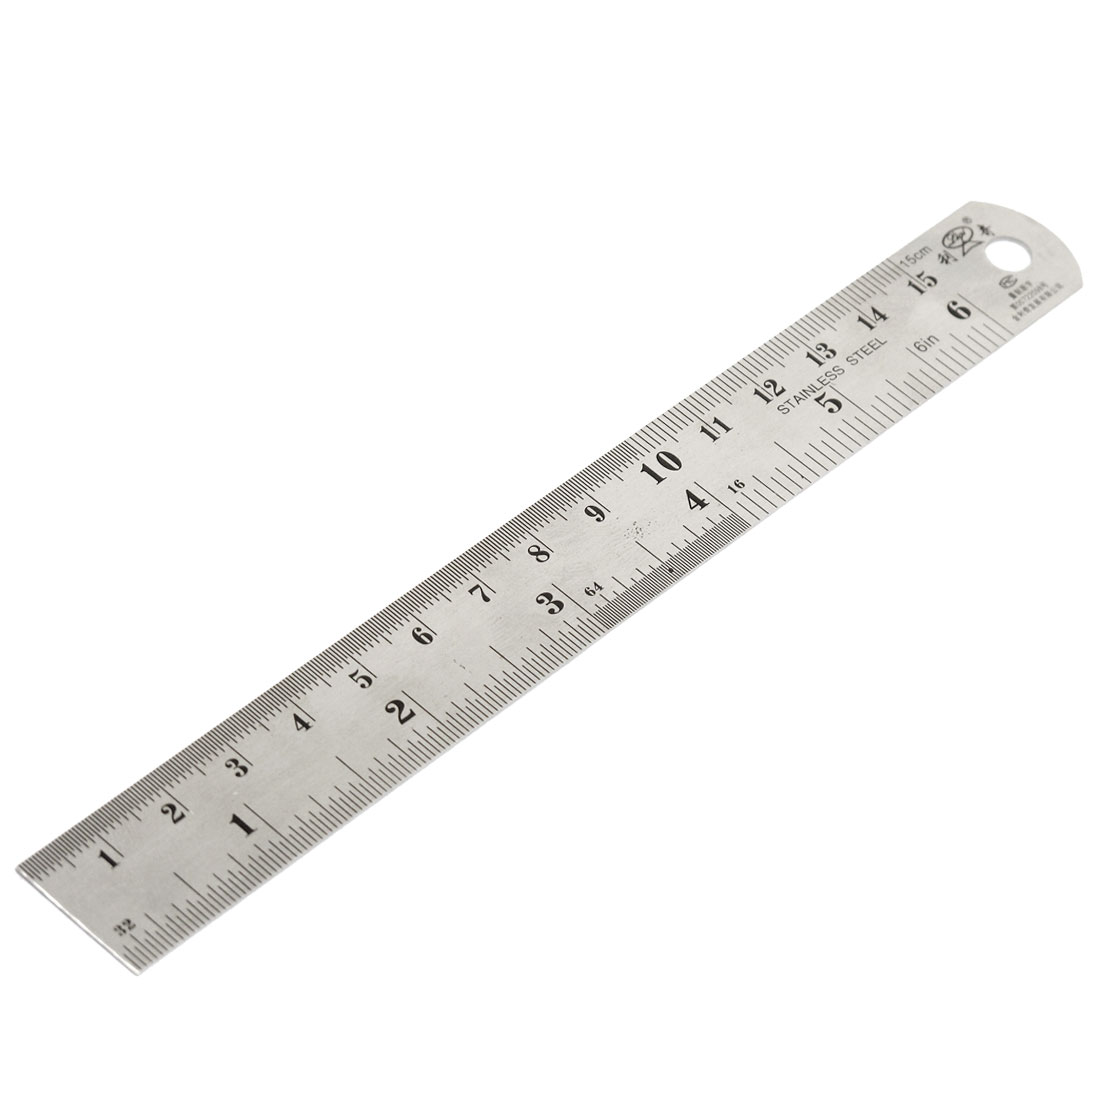 Metric 15cm Stainless Steel Imperial Straight Ruler Measuring Tool 6 Inch